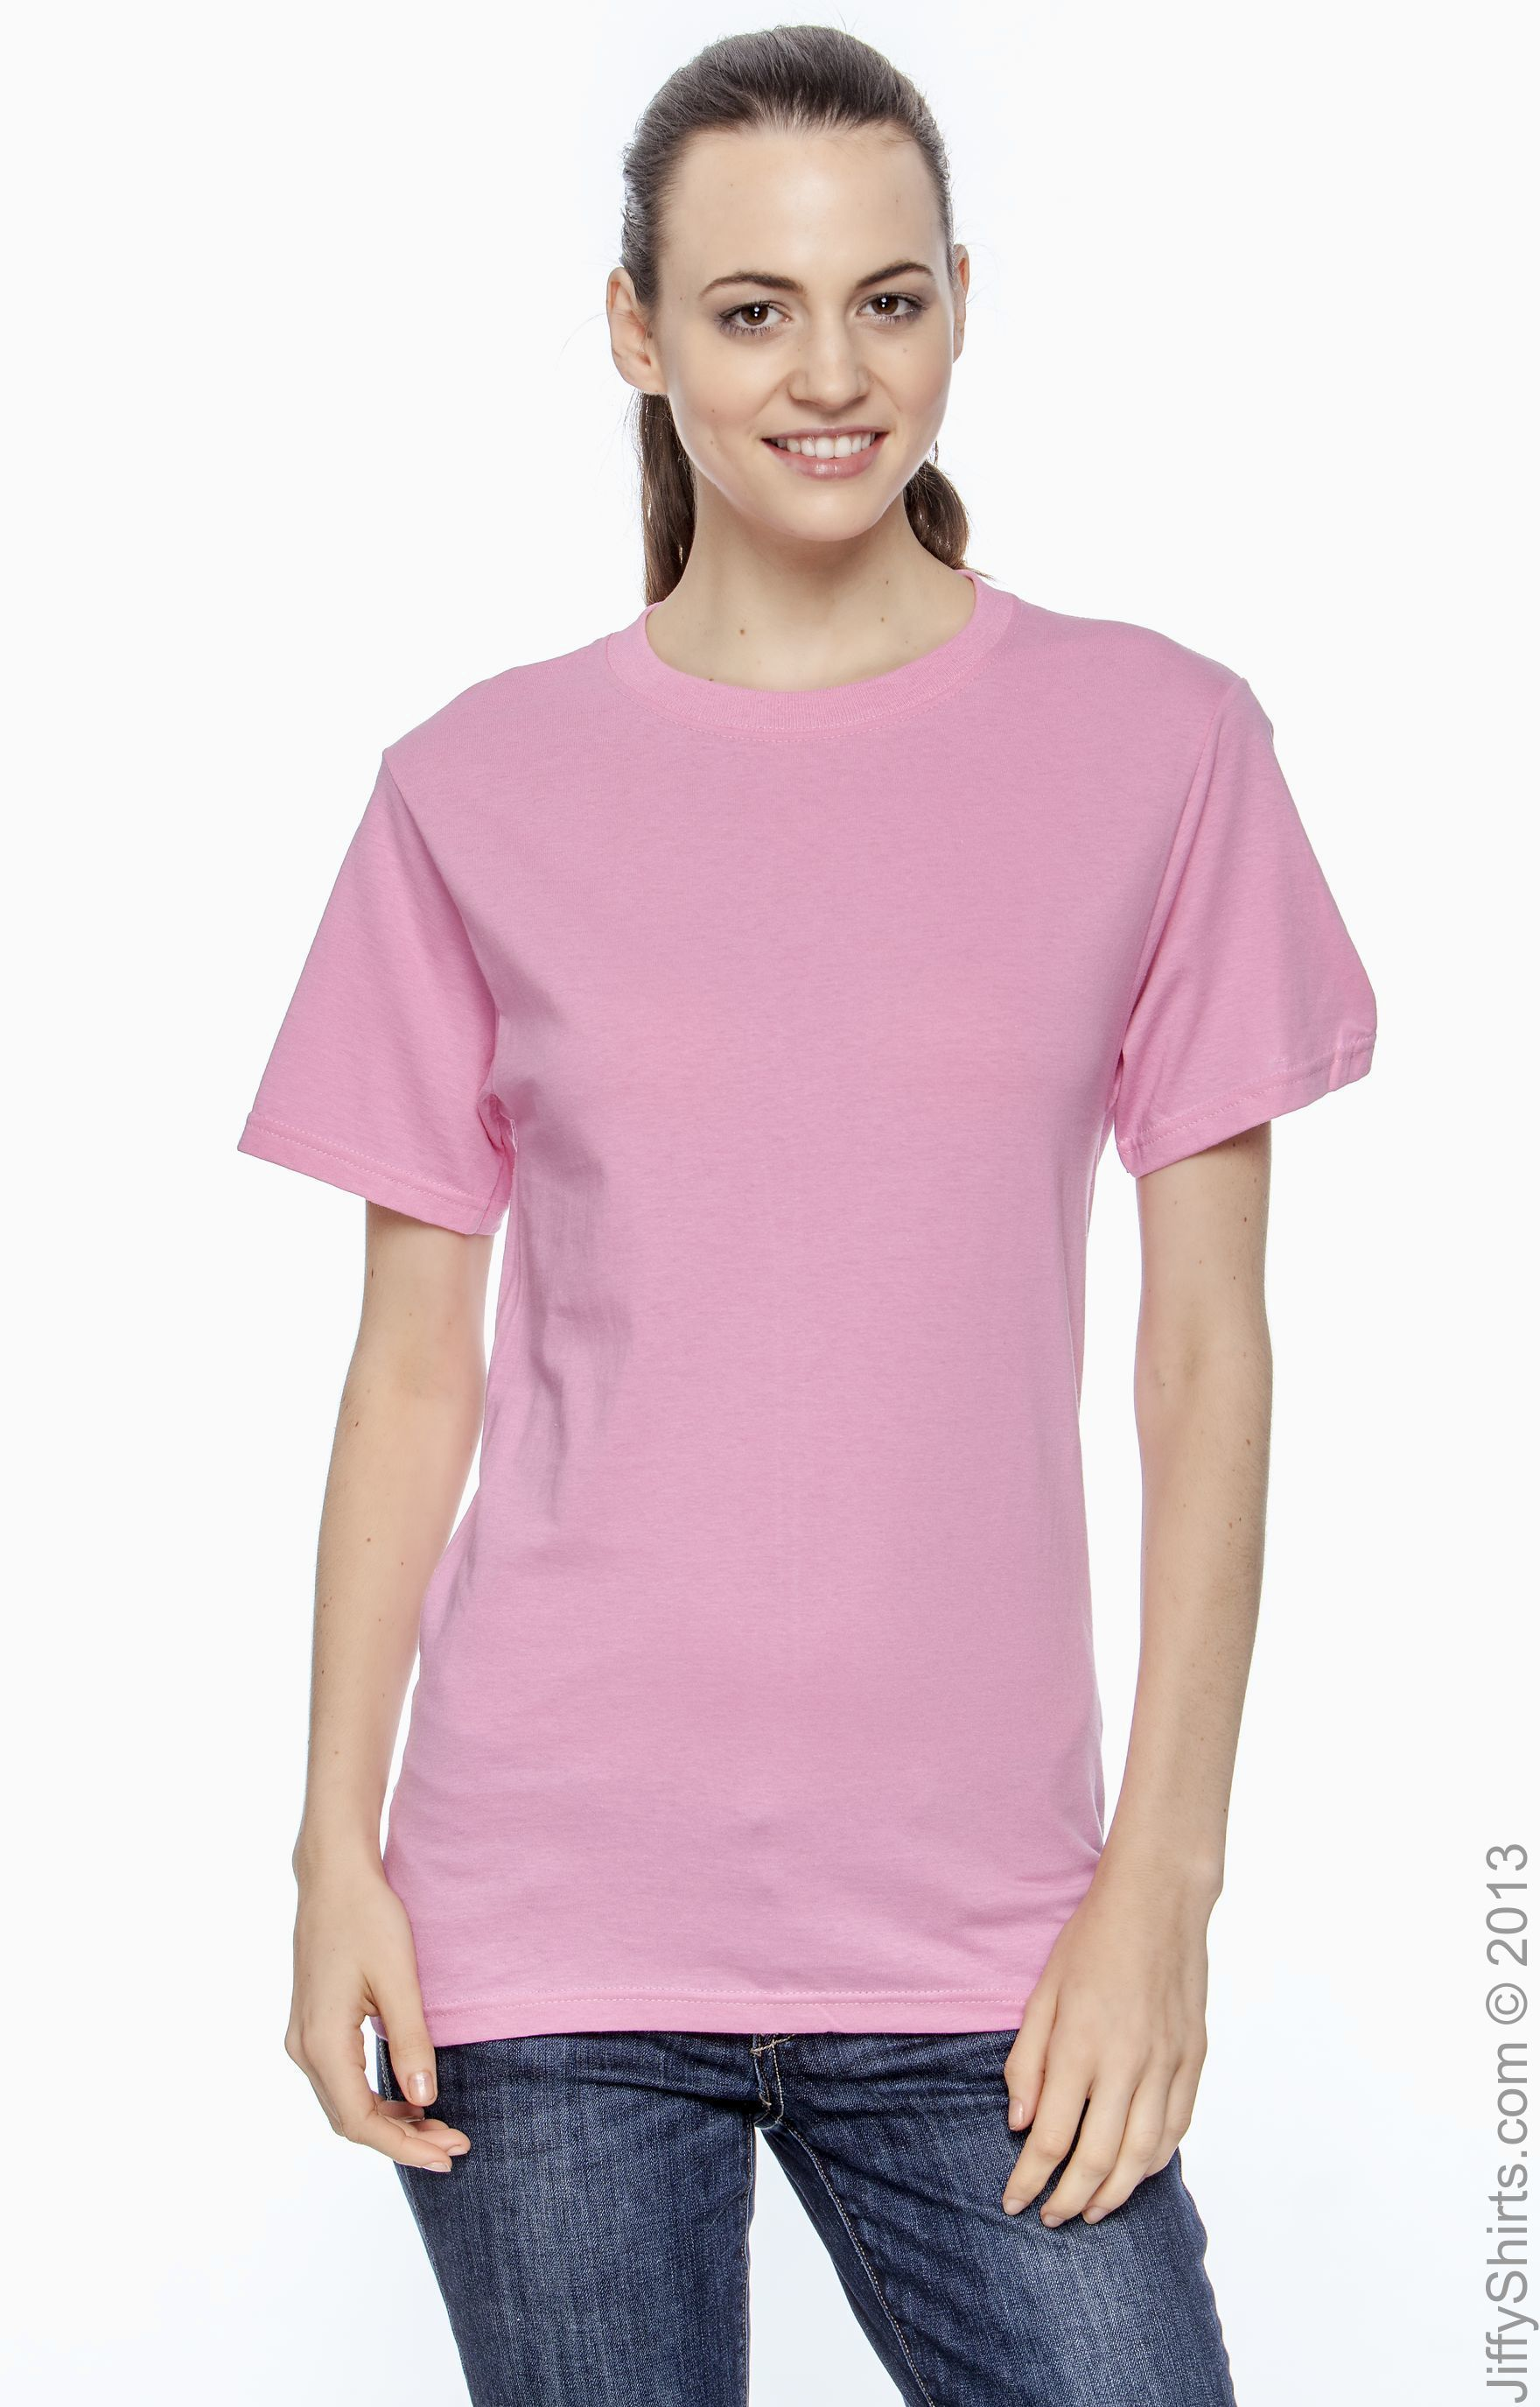 Fruit of the Loom Girls Double Needle Ribbed Collar Heavy Cotton T-Shirt T3930